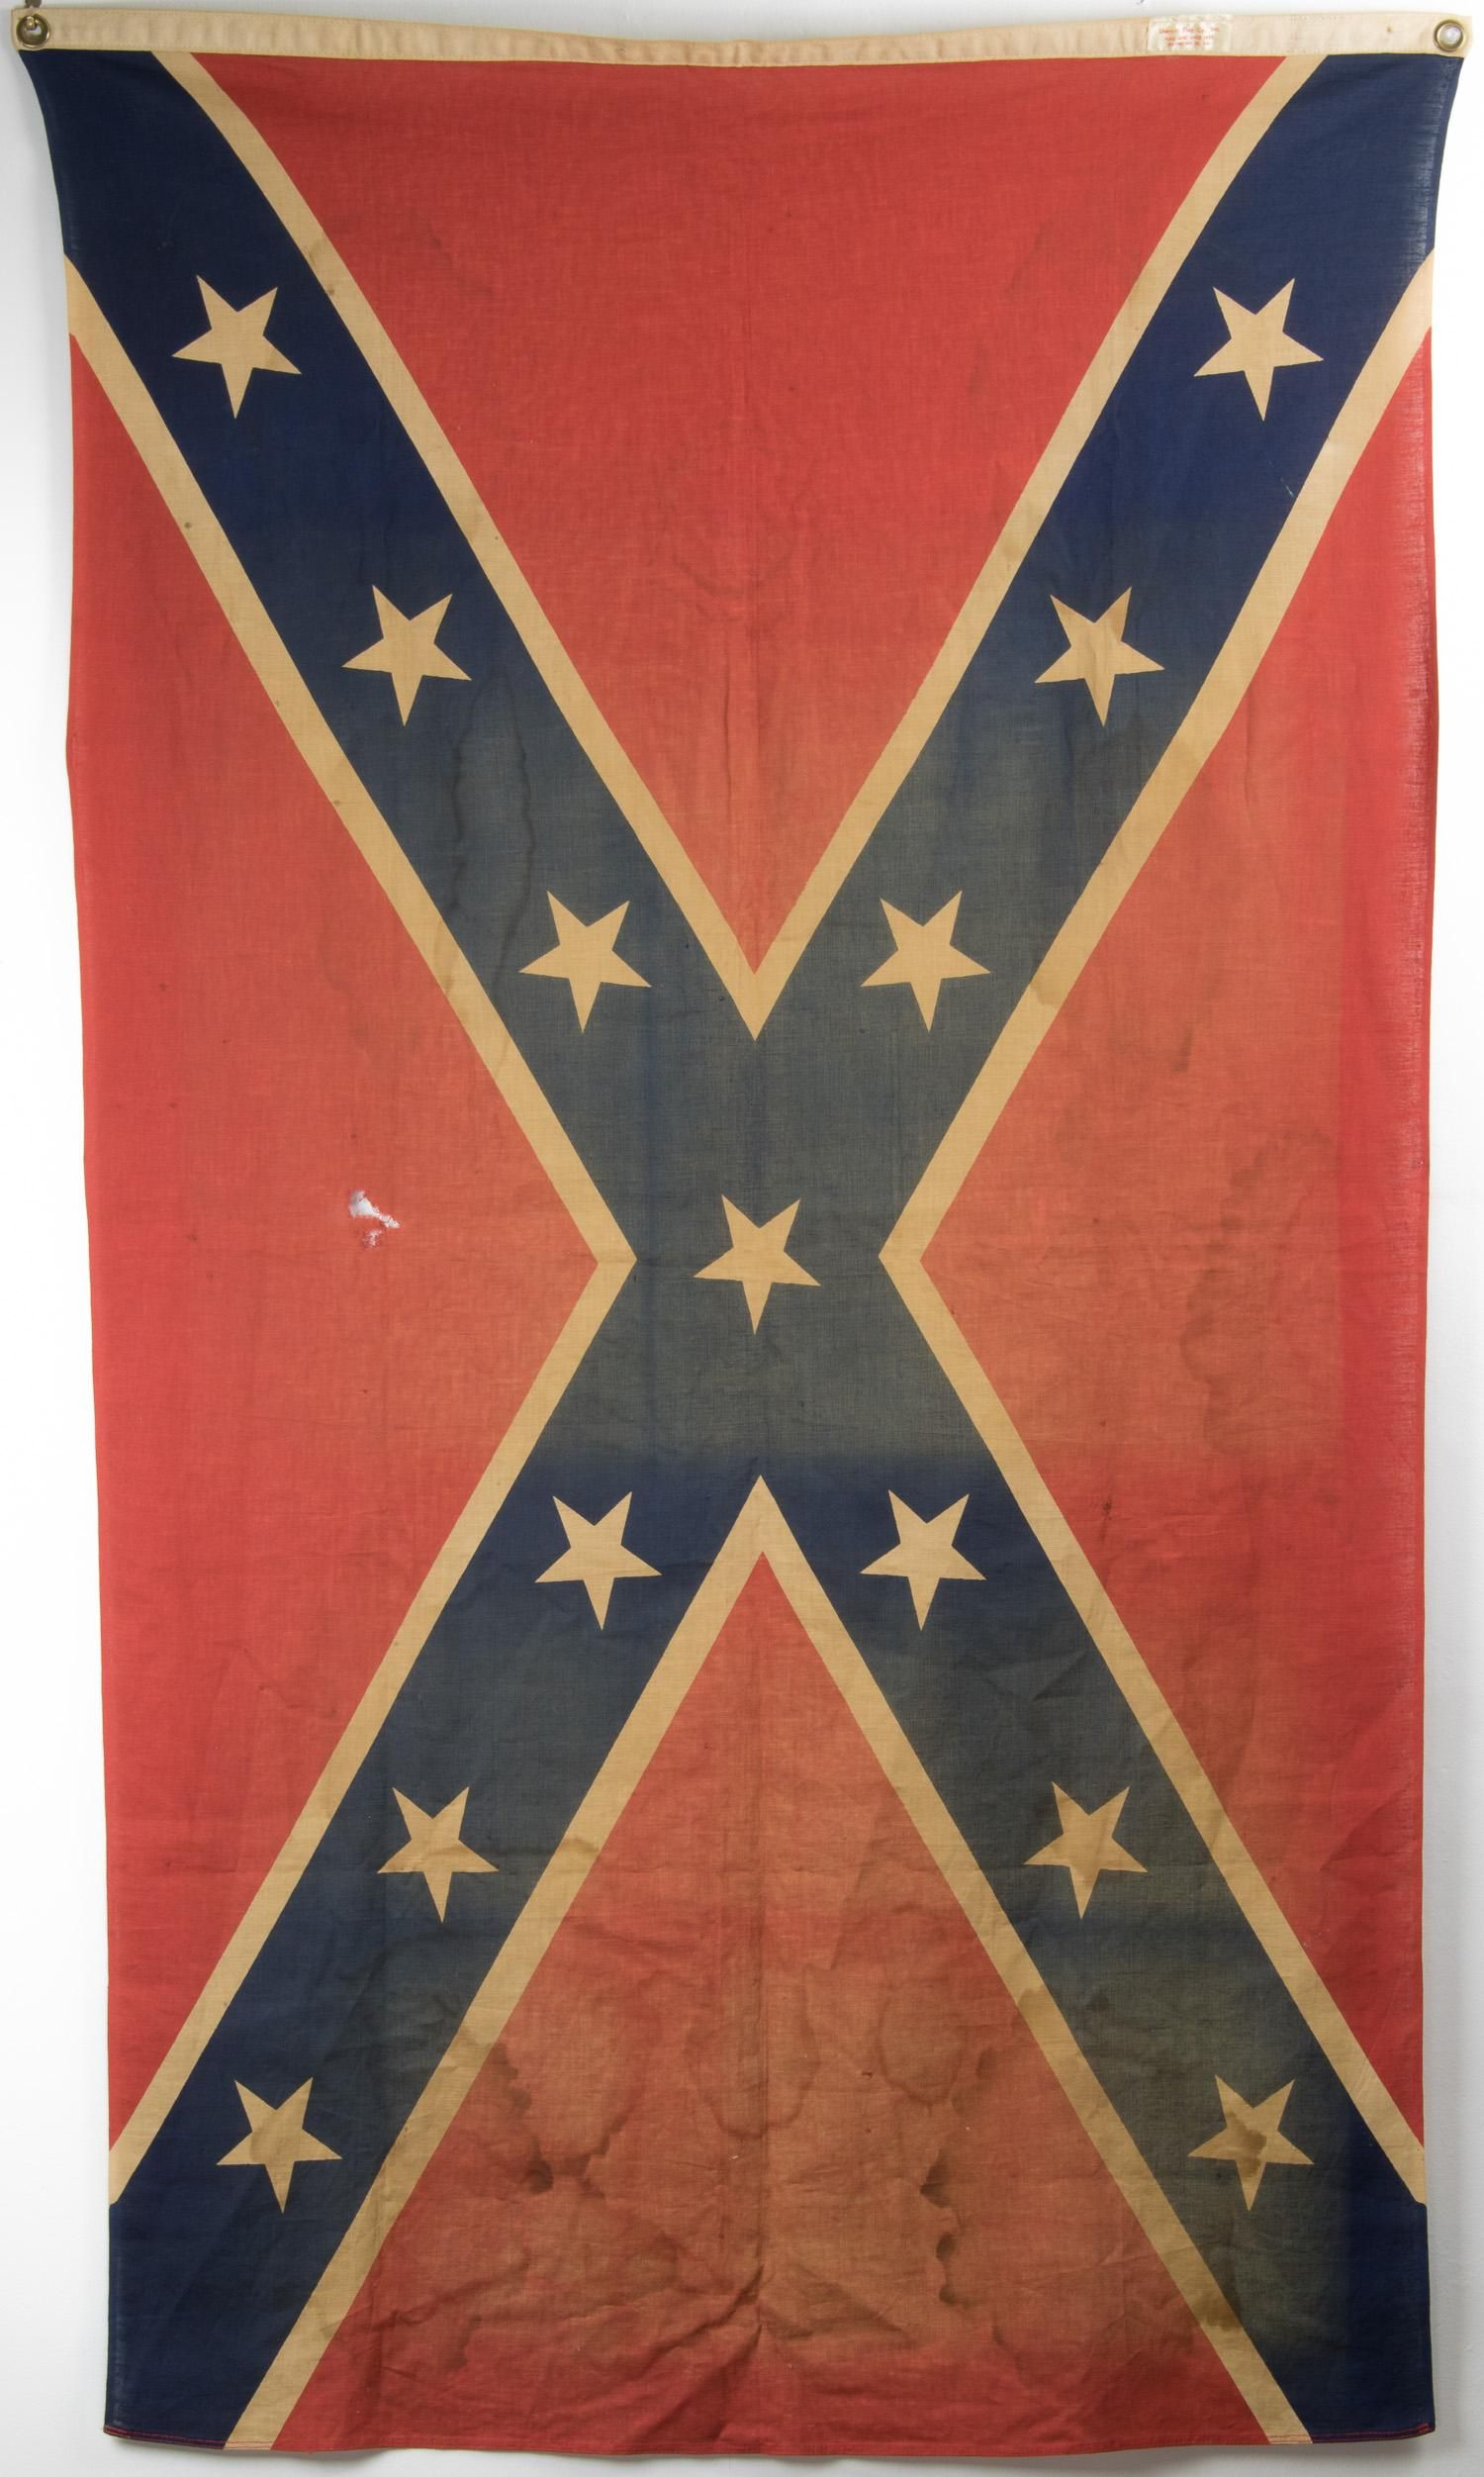 KLANSMEN'S PATCH AND CONFEDERATE FLAG